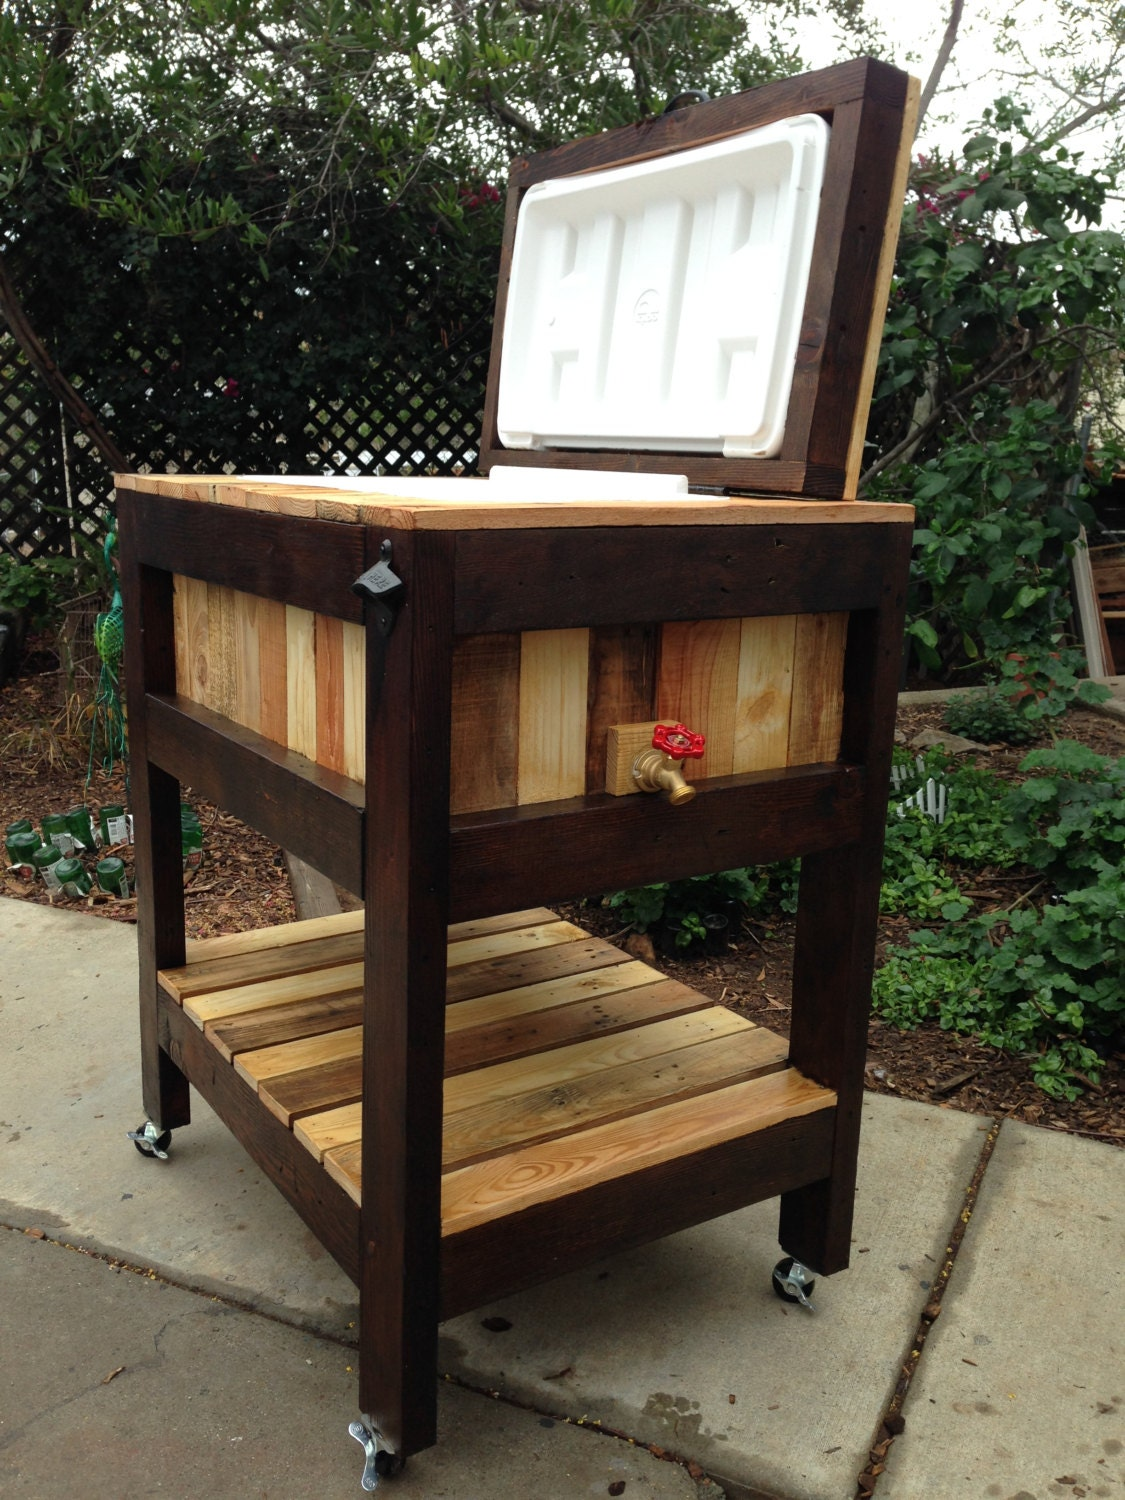 Wood Cooler Made Out of Reclaimed Pallet Wood. Cooler Stand